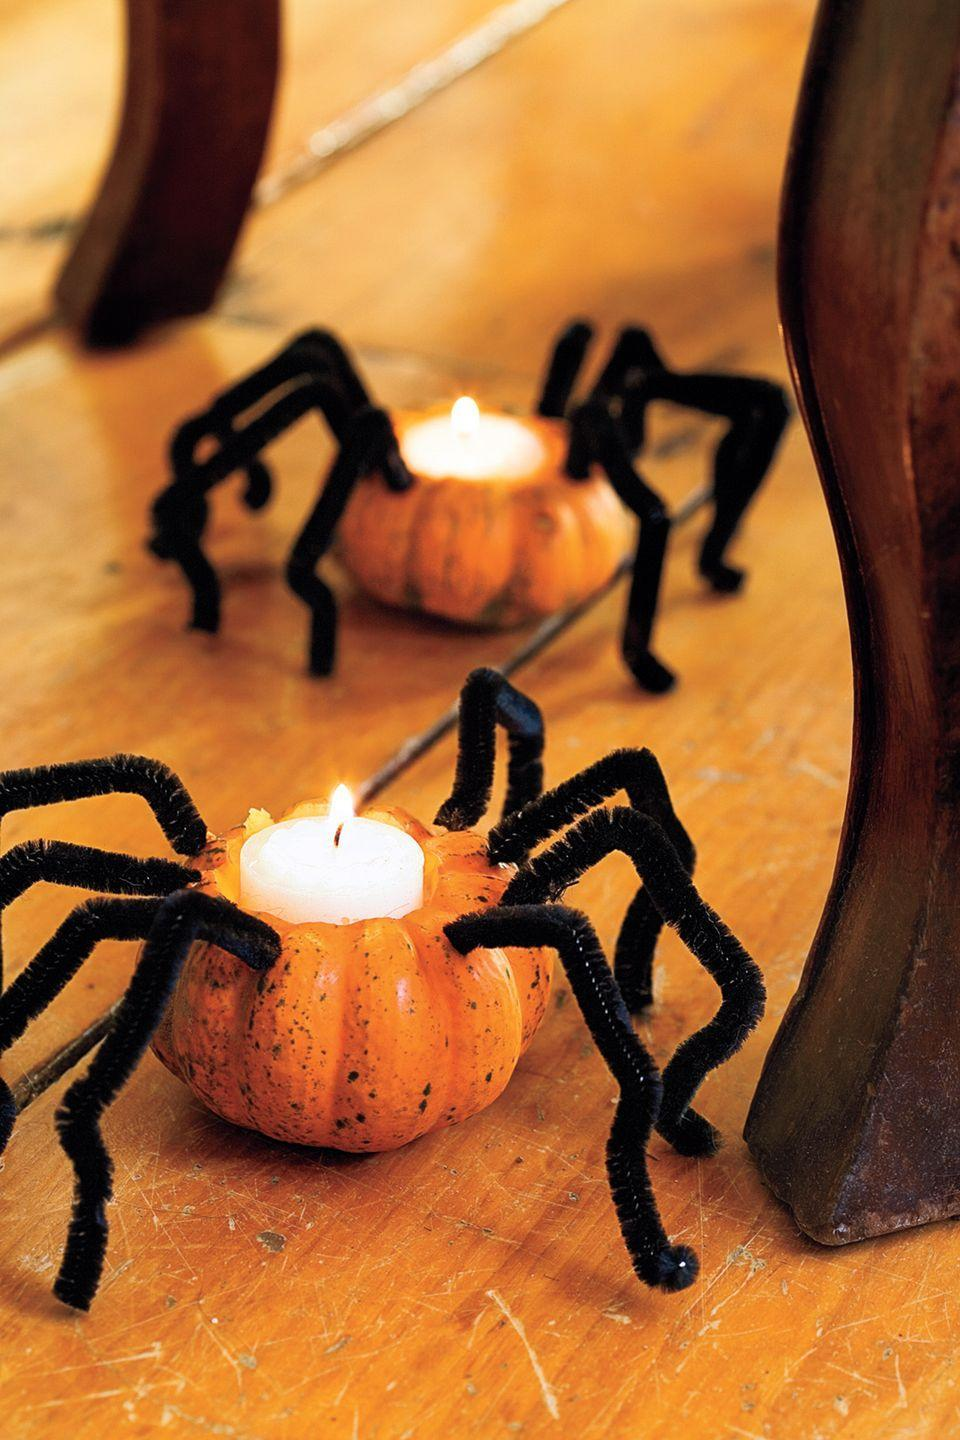 """<p>Showcase mini pumpkins instead of giant gourds for a change. Just bend pipe cleaners for spidery legs and scoop out a spot for a flickering tealight. </p><p><strong><a class=""""link rapid-noclick-resp"""" href=""""https://www.amazon.com/Creativity-Street-Chenille-Cleaners-100-Piece/dp/B00P0NJ89Q/?tag=syn-yahoo-20&ascsubtag=%5Bartid%7C10055.g.1566%5Bsrc%7Cyahoo-us"""" rel=""""nofollow noopener"""" target=""""_blank"""" data-ylk=""""slk:SHOP PIPE CLEANERS"""">SHOP PIPE CLEANERS</a></strong></p>"""